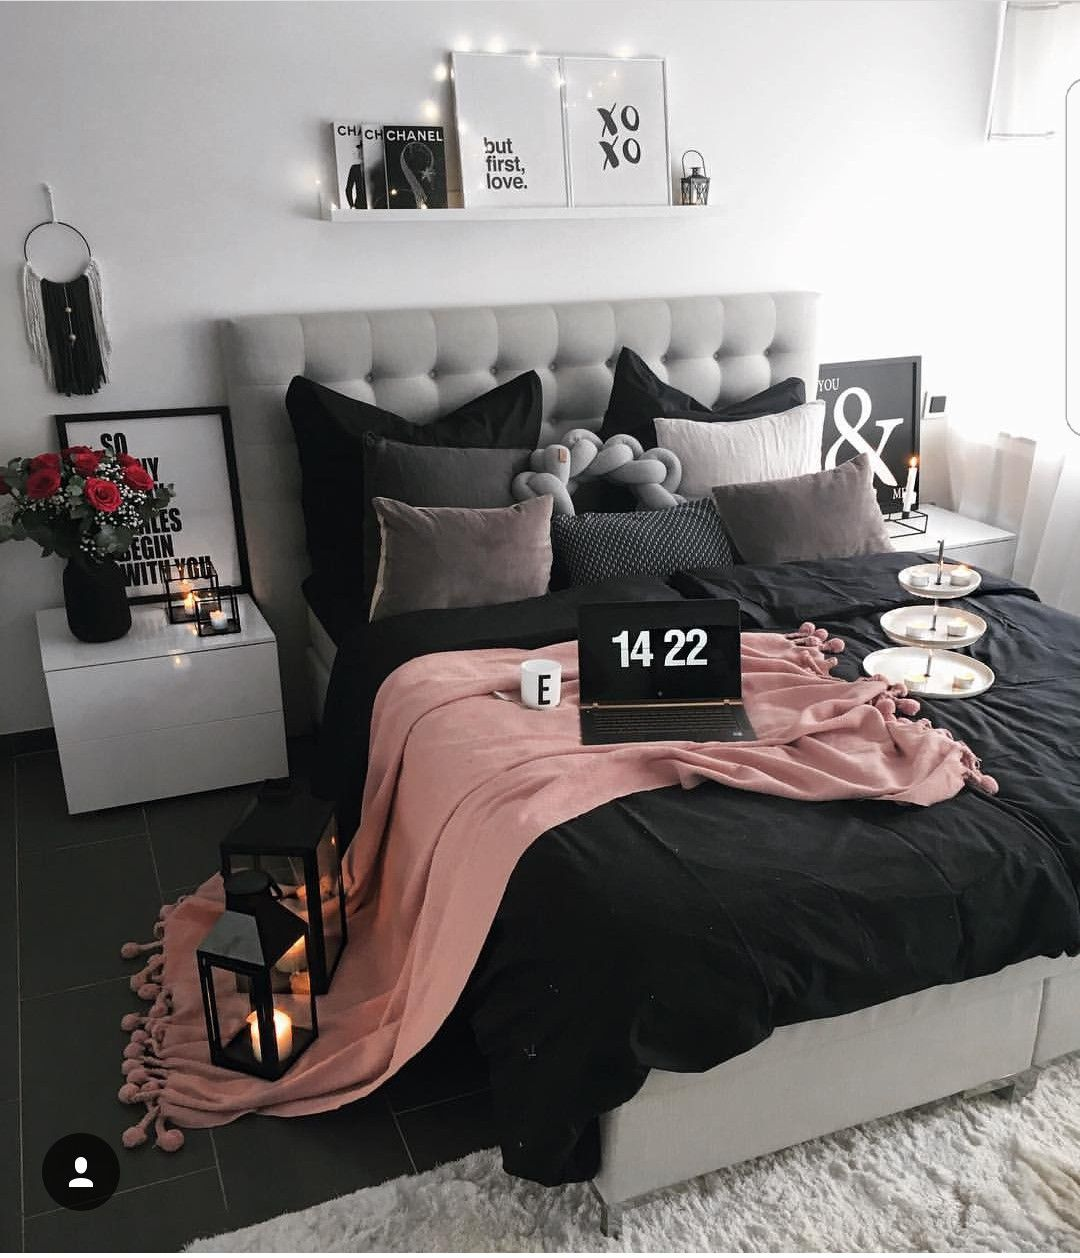 Bedroom inspiration | For the Home | Pinterest | Bedrooms, Room